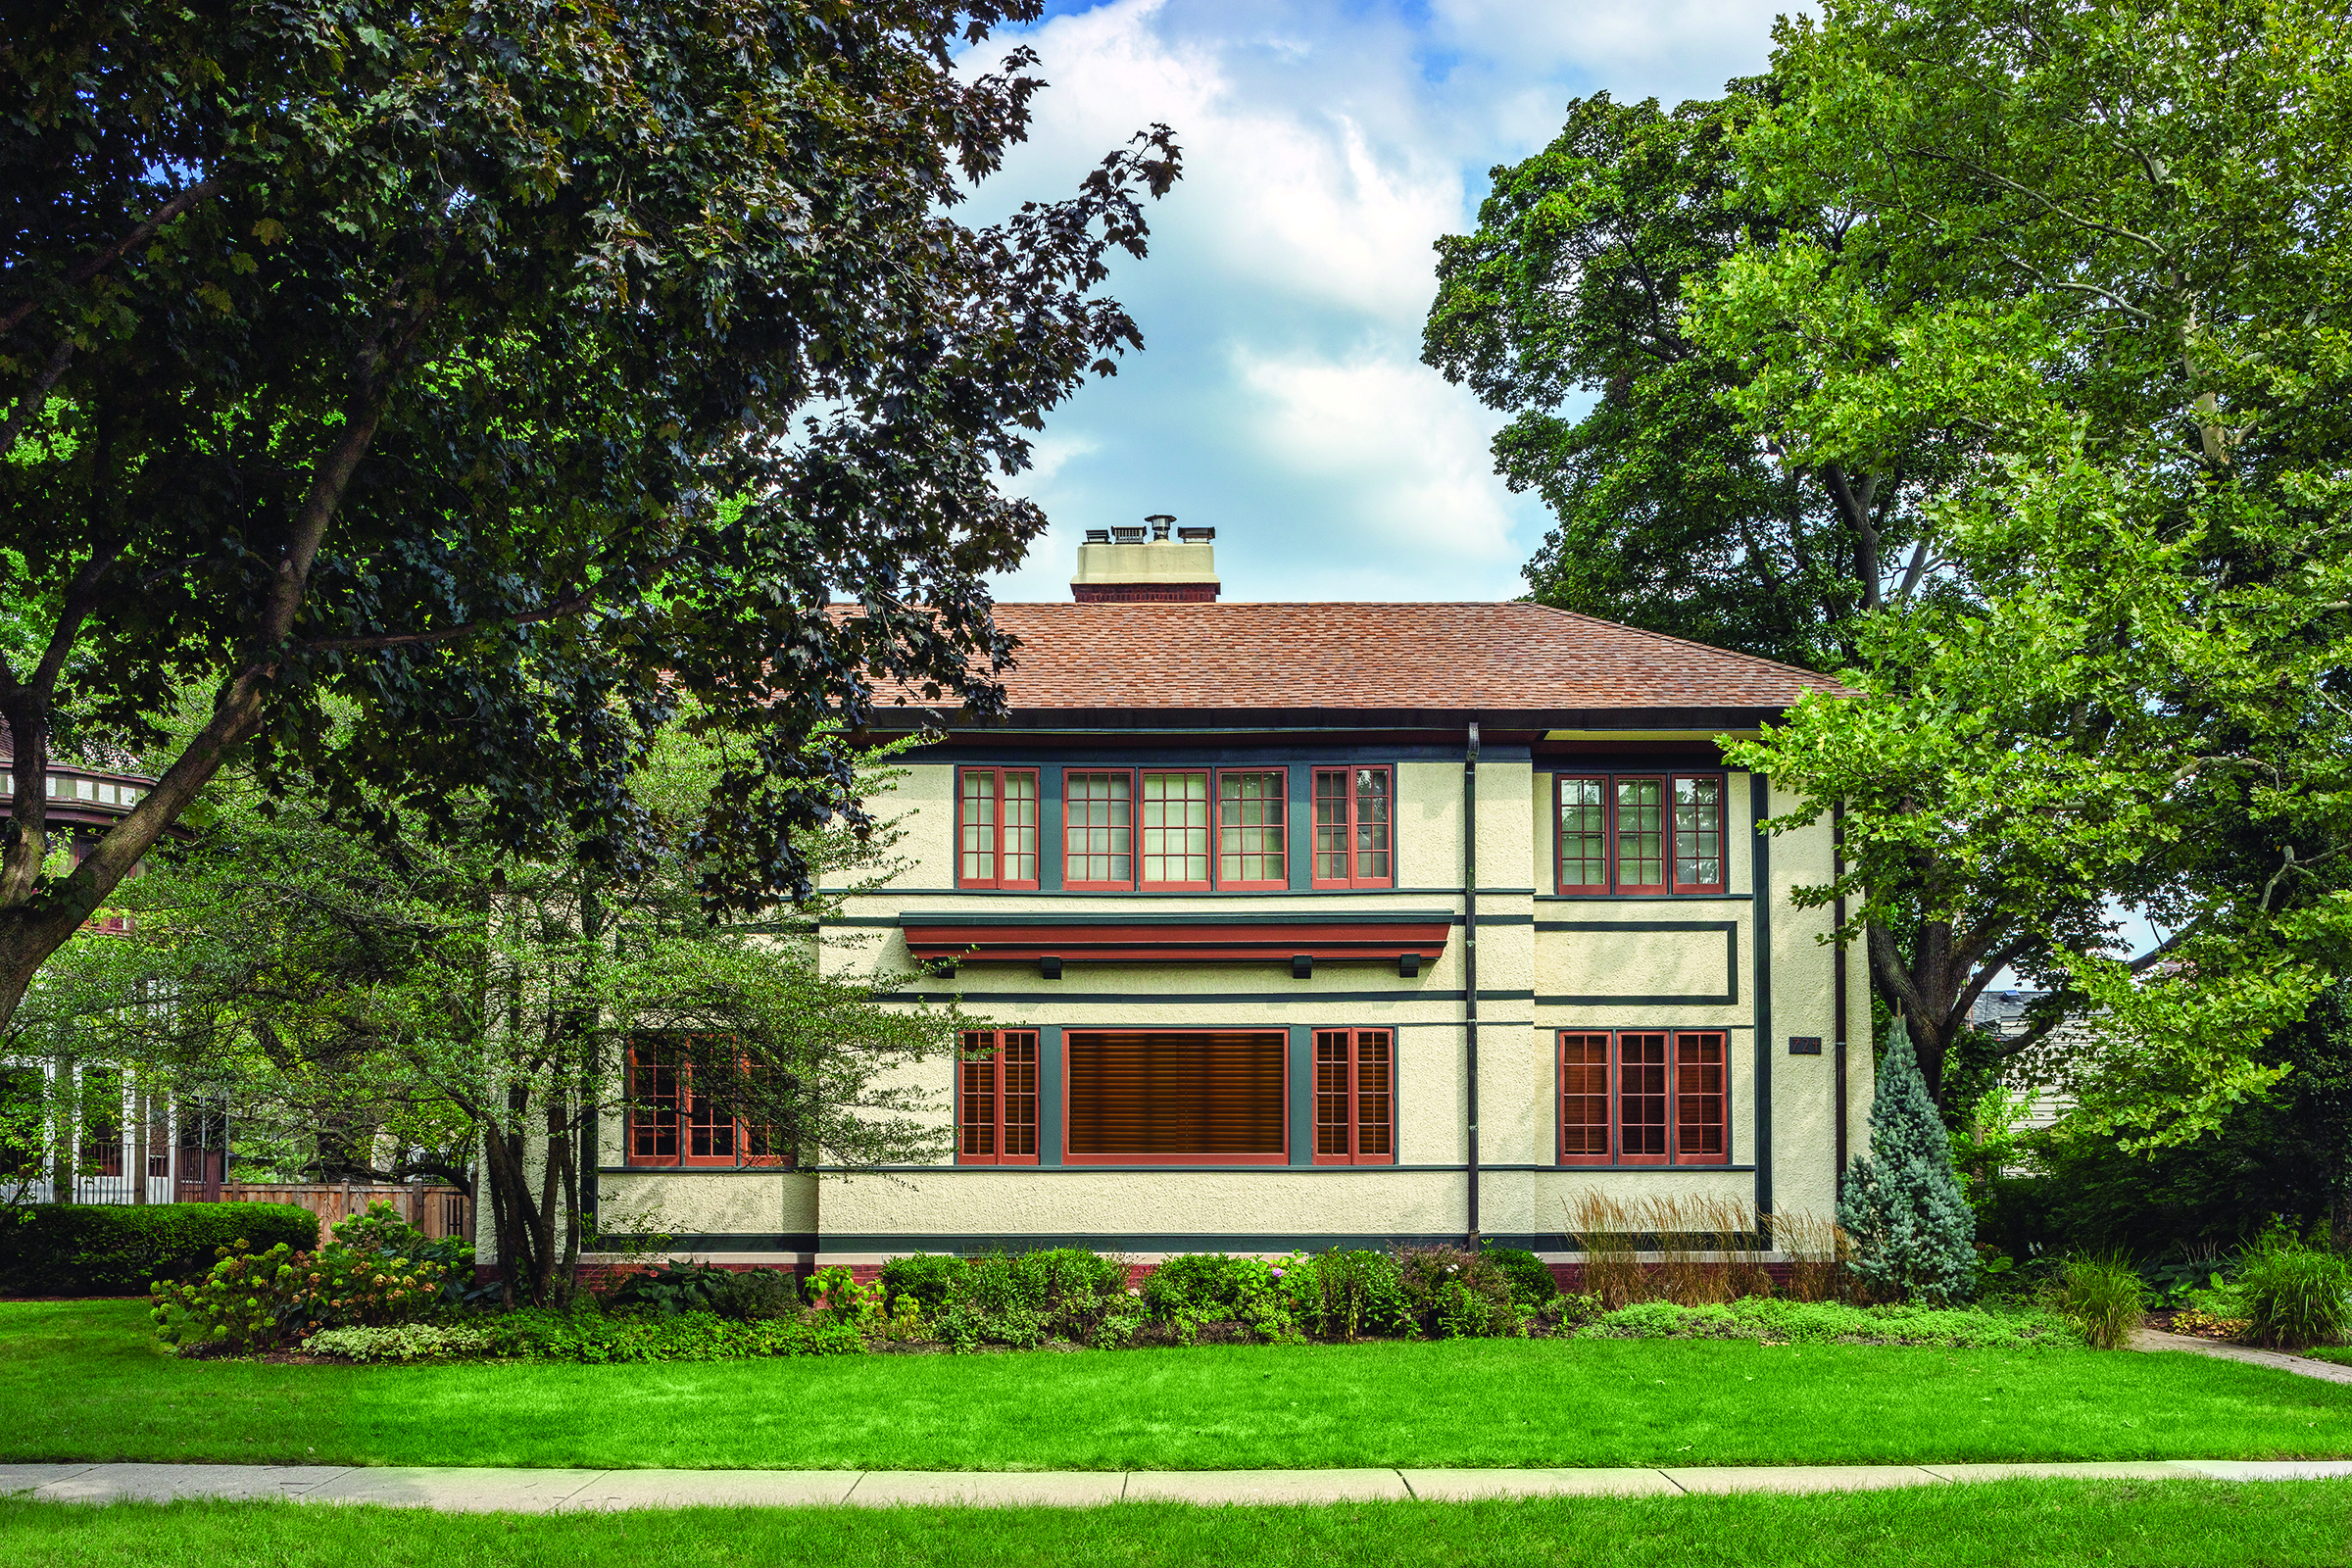 Ernest P. Waud House ( T allmadge & Watson, 1914) Credit: Courtesy of Frank Lloyd Wright Trust. Photographer: James Caulfield